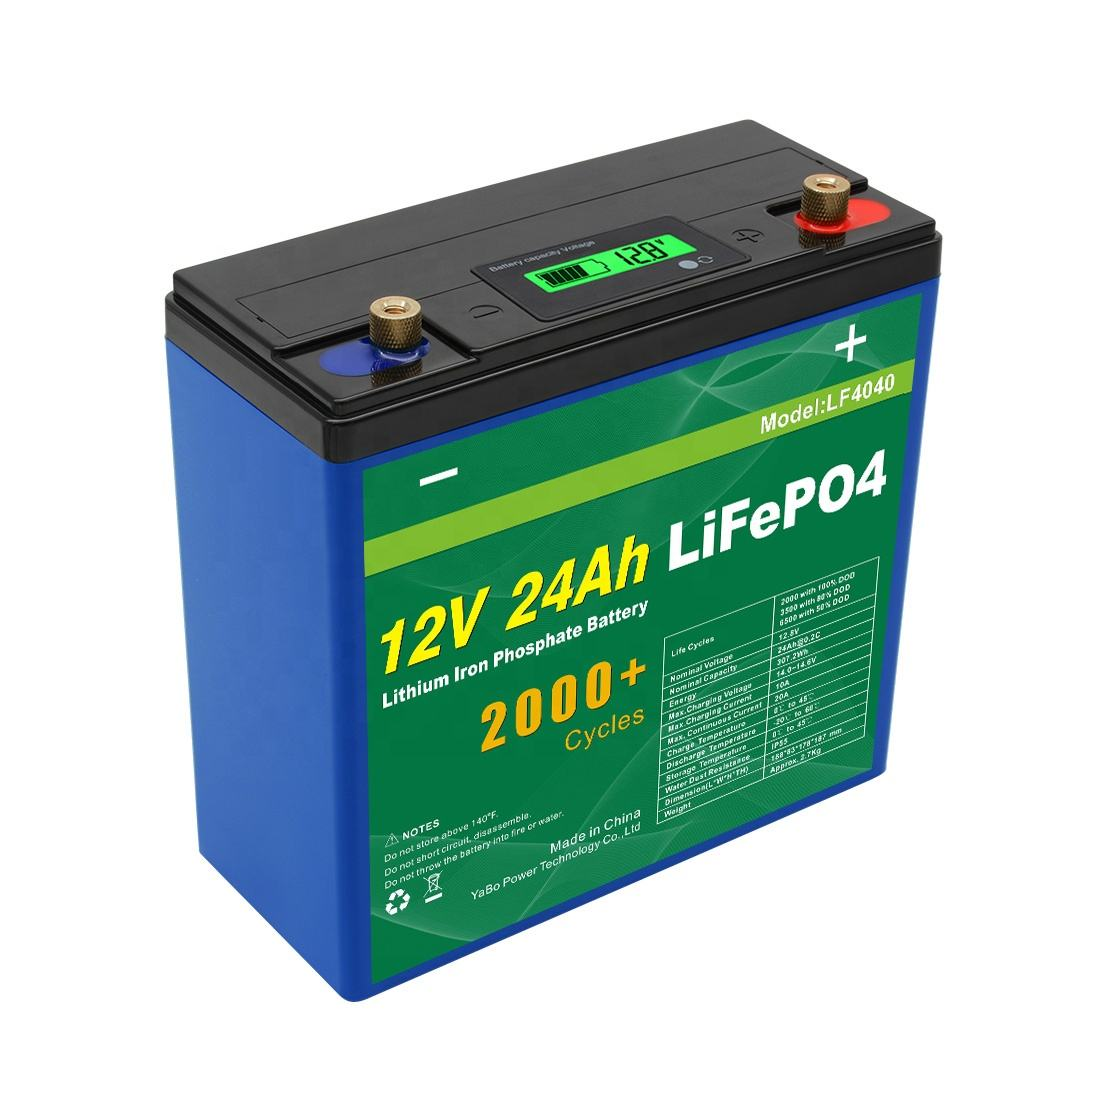 Fast Shipping Iron Phosphate Lithium Lifepo4 Storage Batteries 12v 24Ah Lithium Ion Battery For Solar Energy Storage Systems